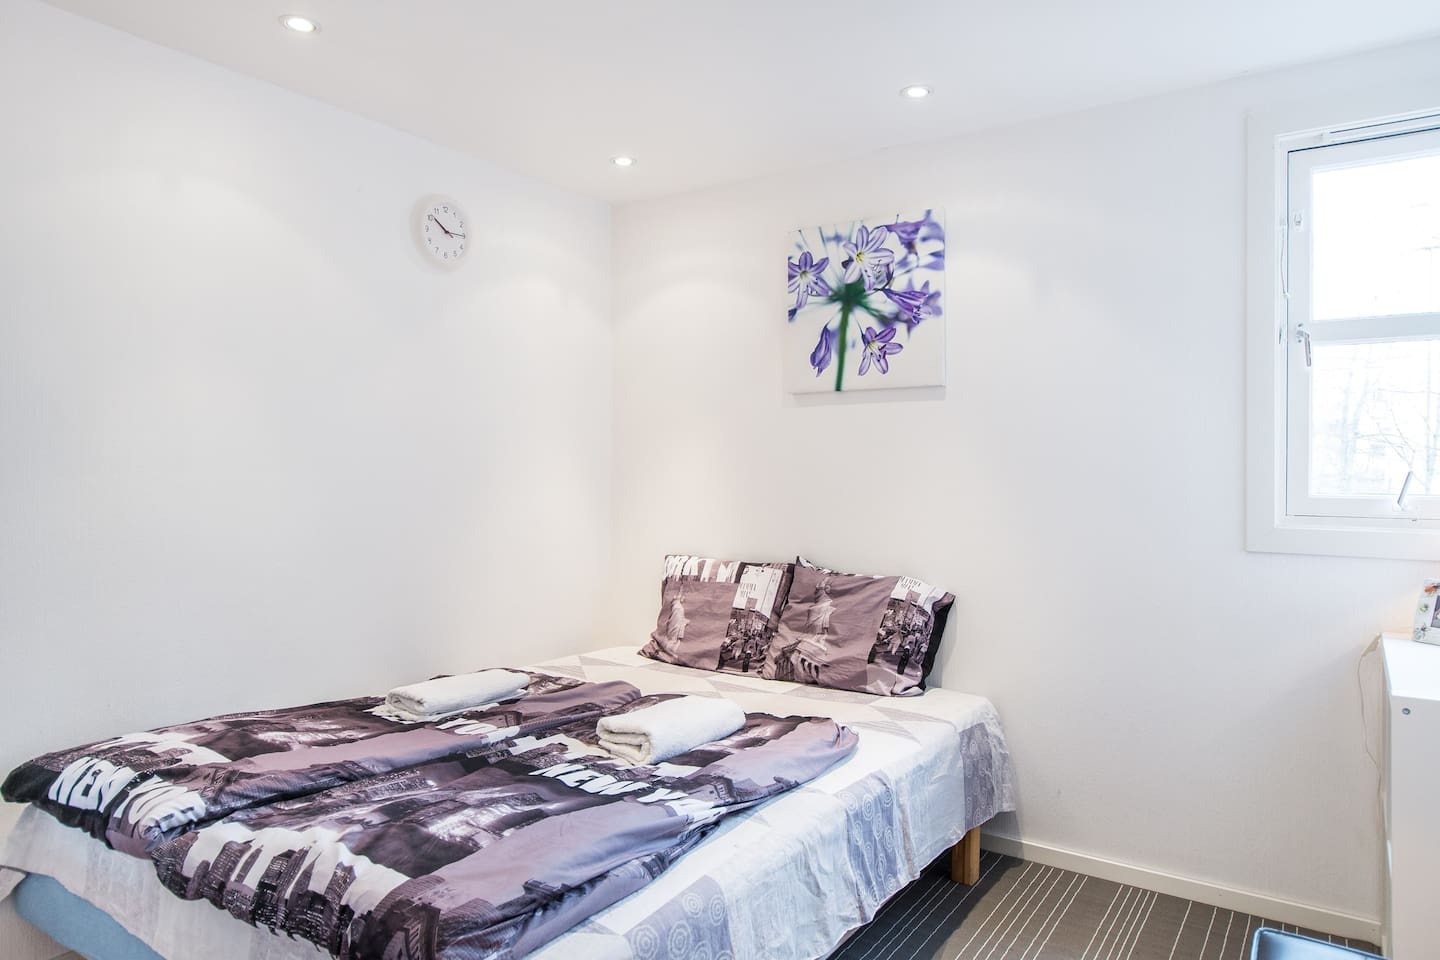 Spacious & cozy bedroom with windows and false ceiling